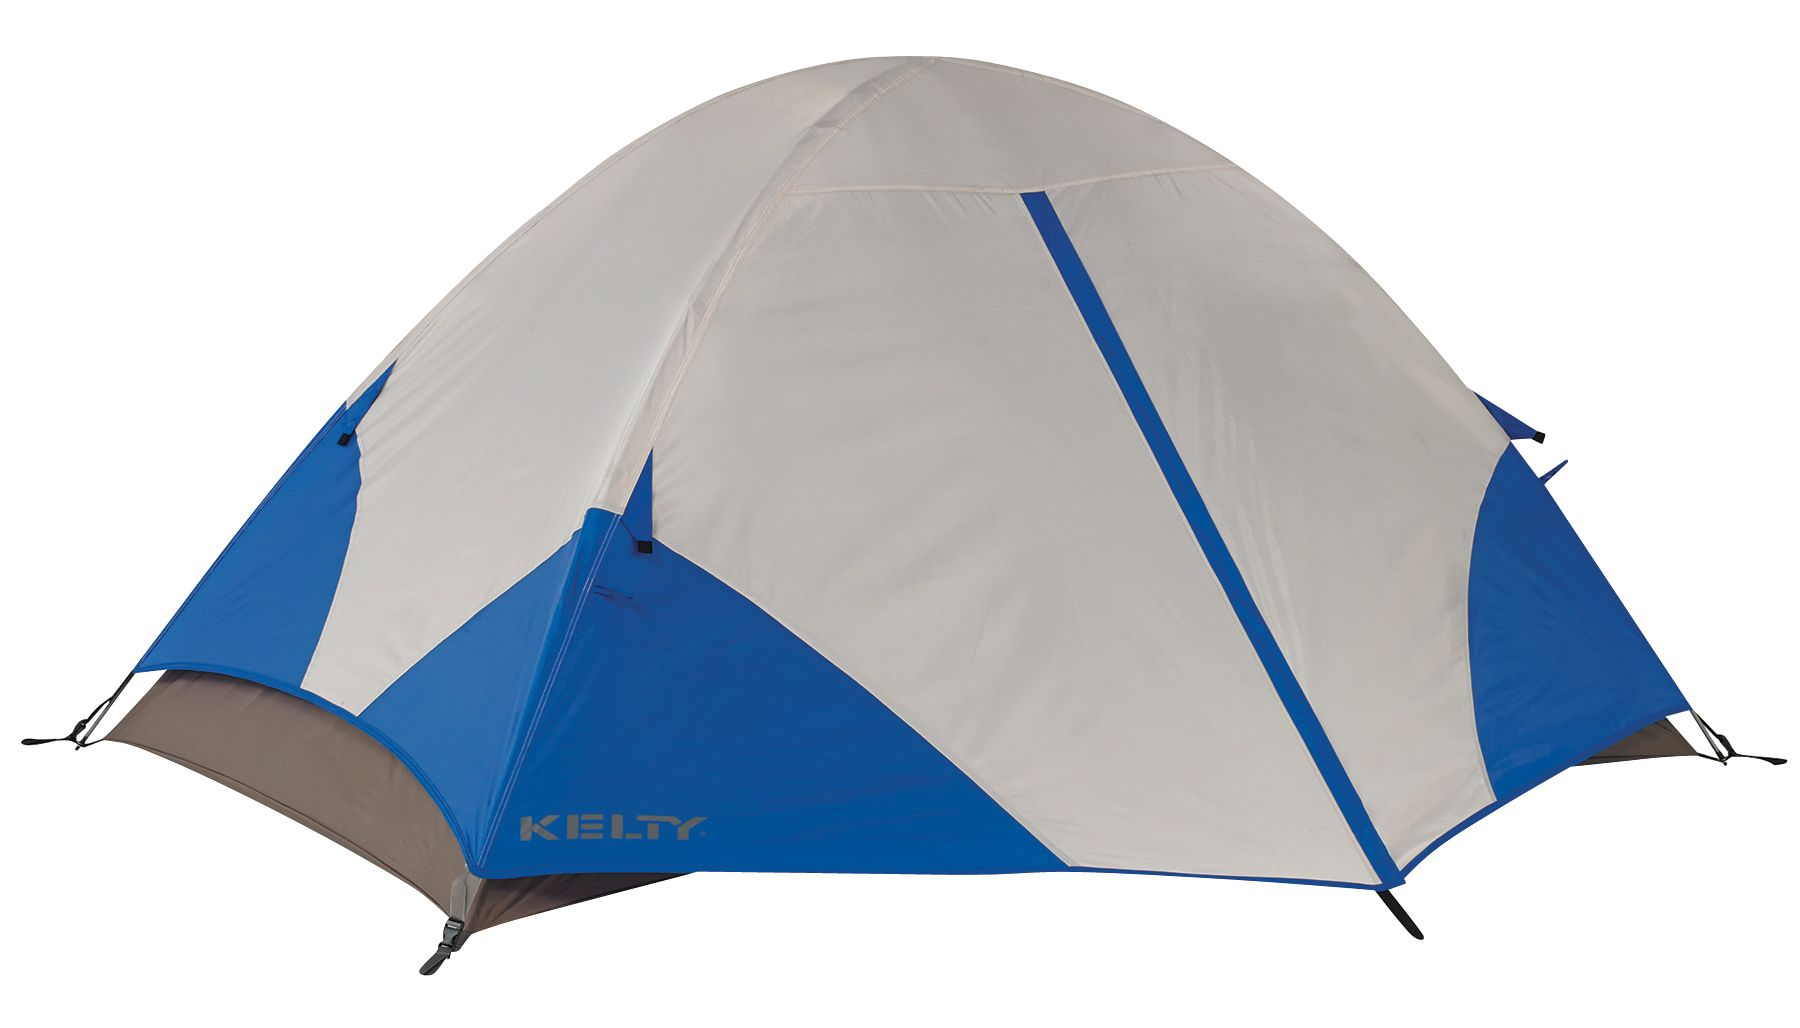 Kelty Tempest 2 Person Tent  sc 1 st  DICKu0027S Sporting Goods & Kelty Tempest 2 Person Tent | DICKu0027S Sporting Goods